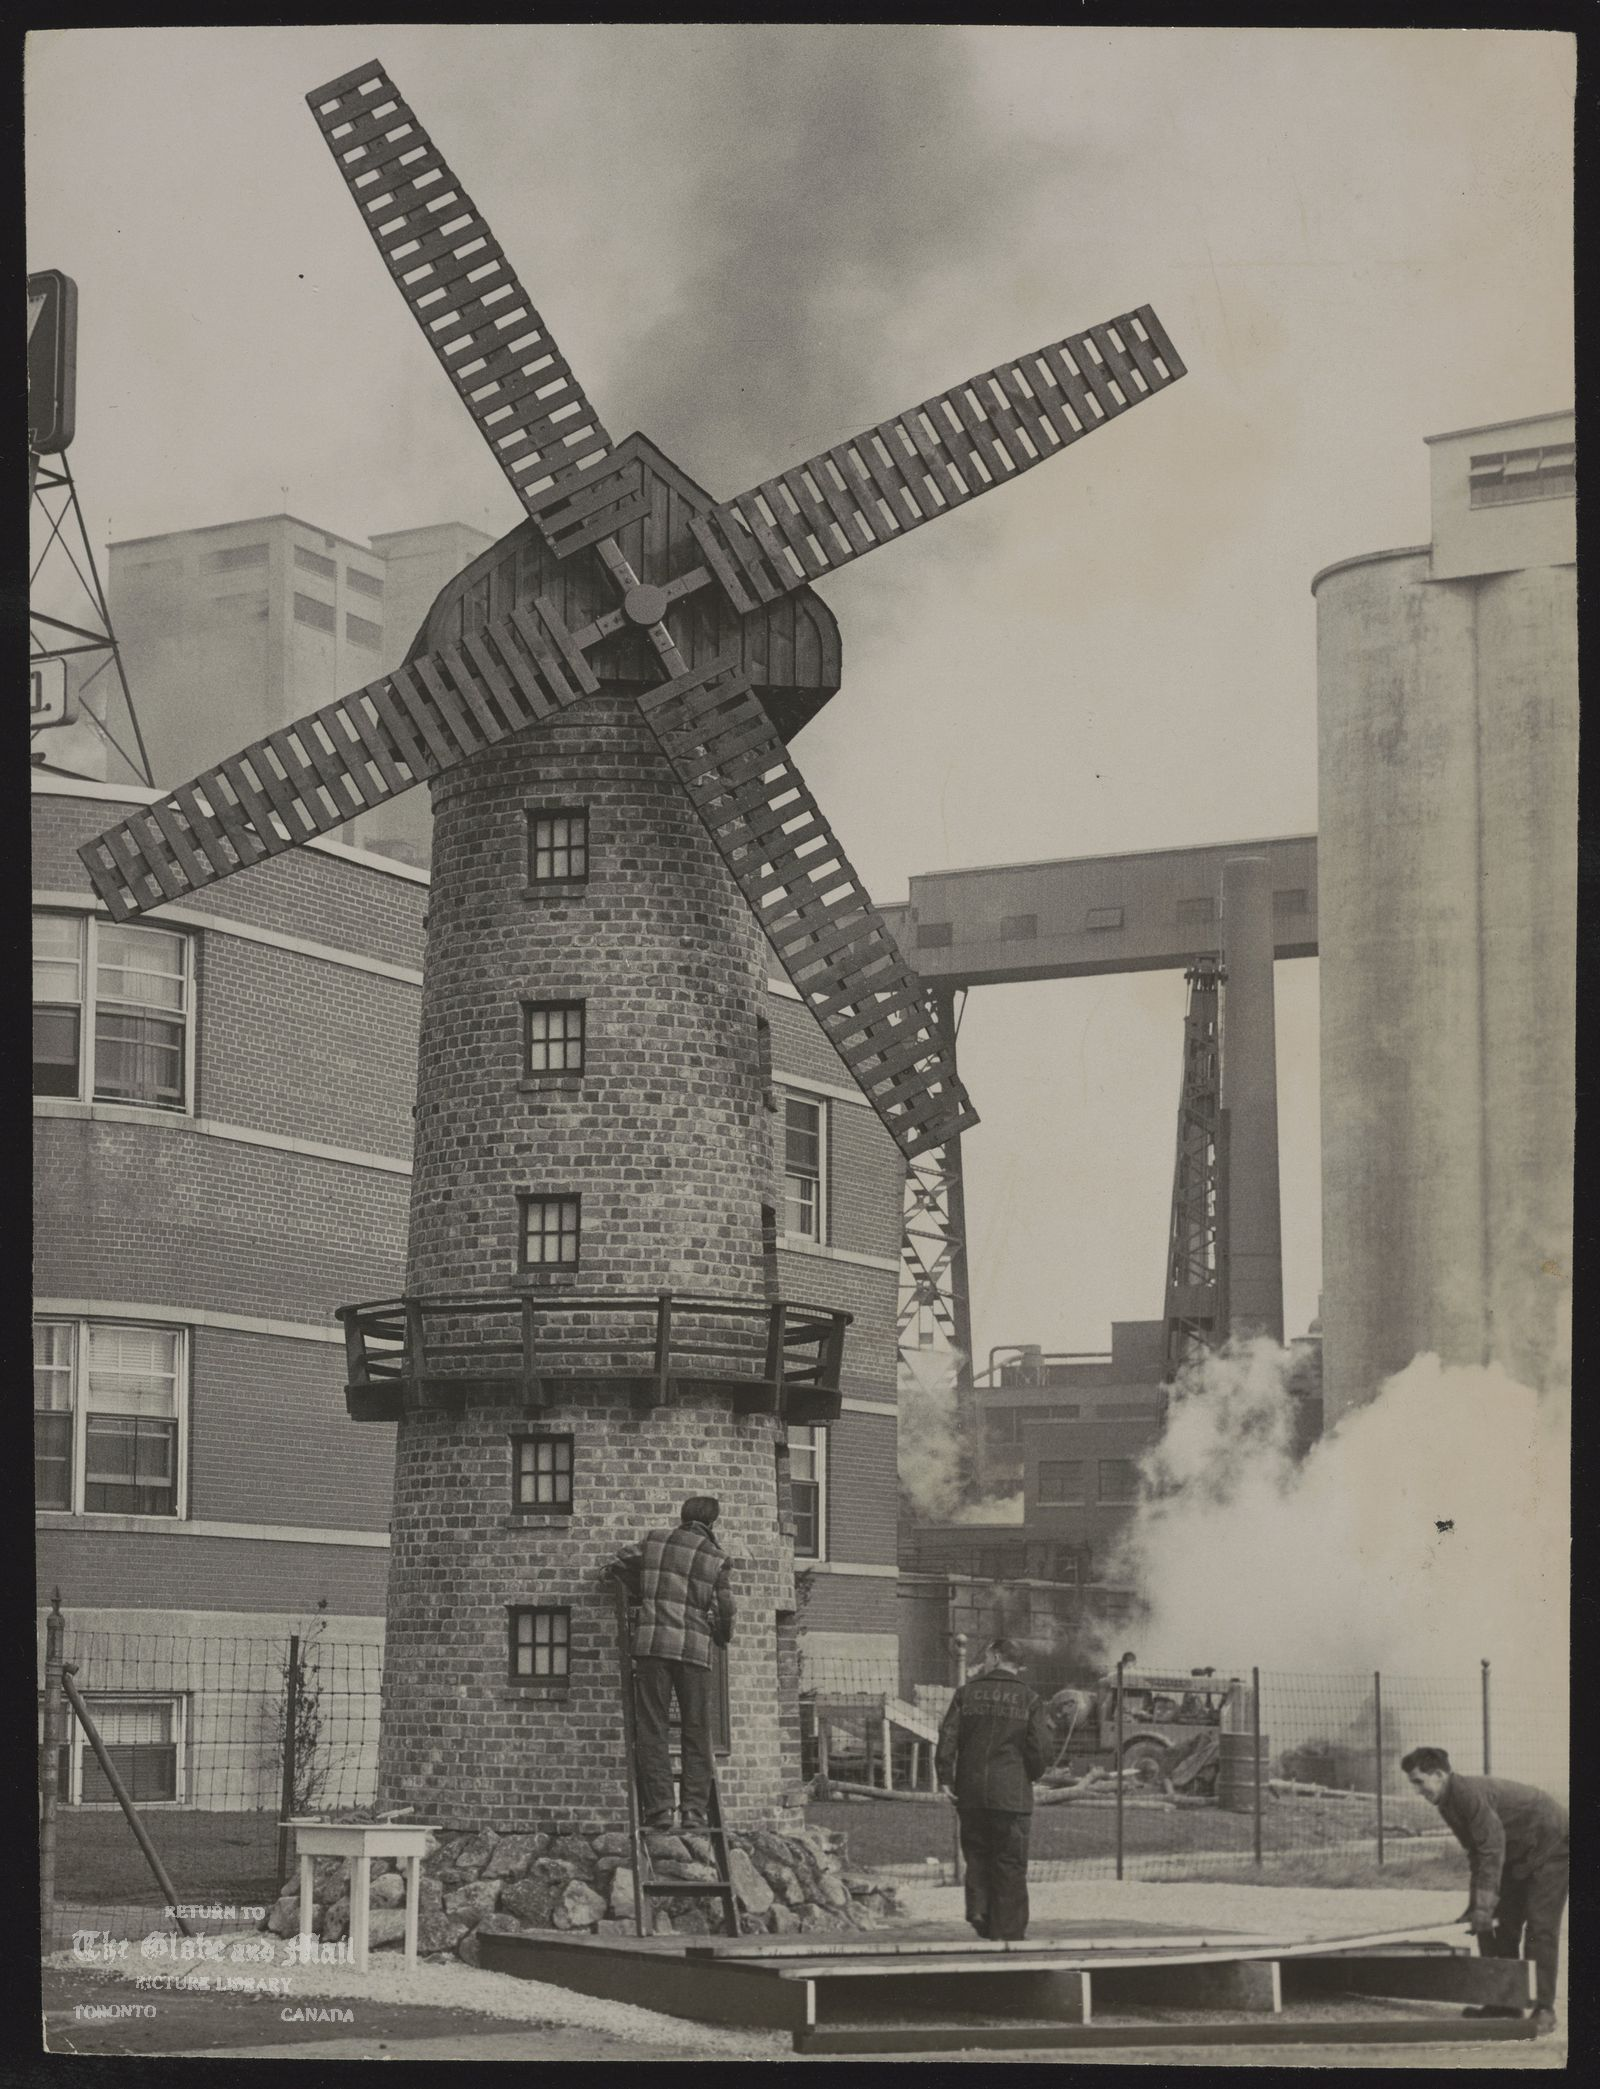 WINDMILLS Gooderham and Worts Windmill, Toronto [Windmill reproduced close to its original site. Famous waterfront landmark constructed 122 years ago.]